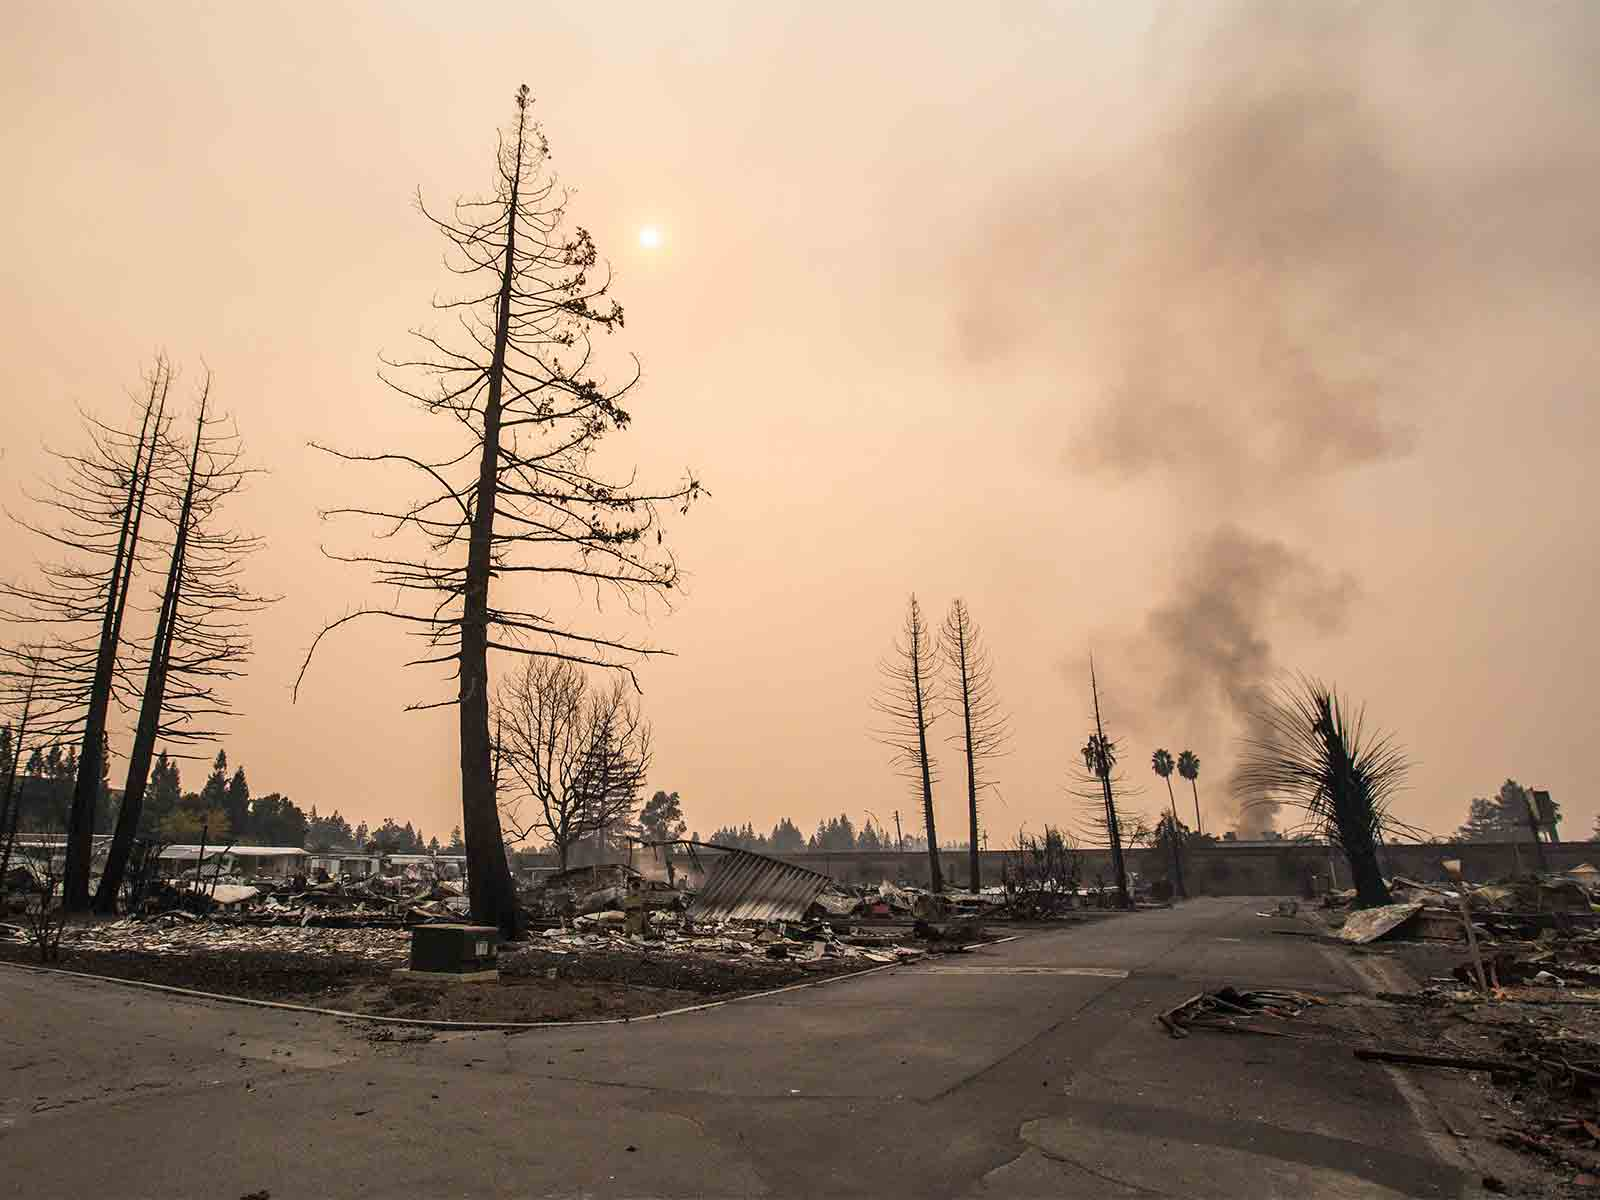 Smoke rises over Journey's End mobile home park in Santa Rosa on Monday as multiple fires break out across Sonoma, Napa and other North Bay counties. (Jessica Christian/S.F. Examiner)